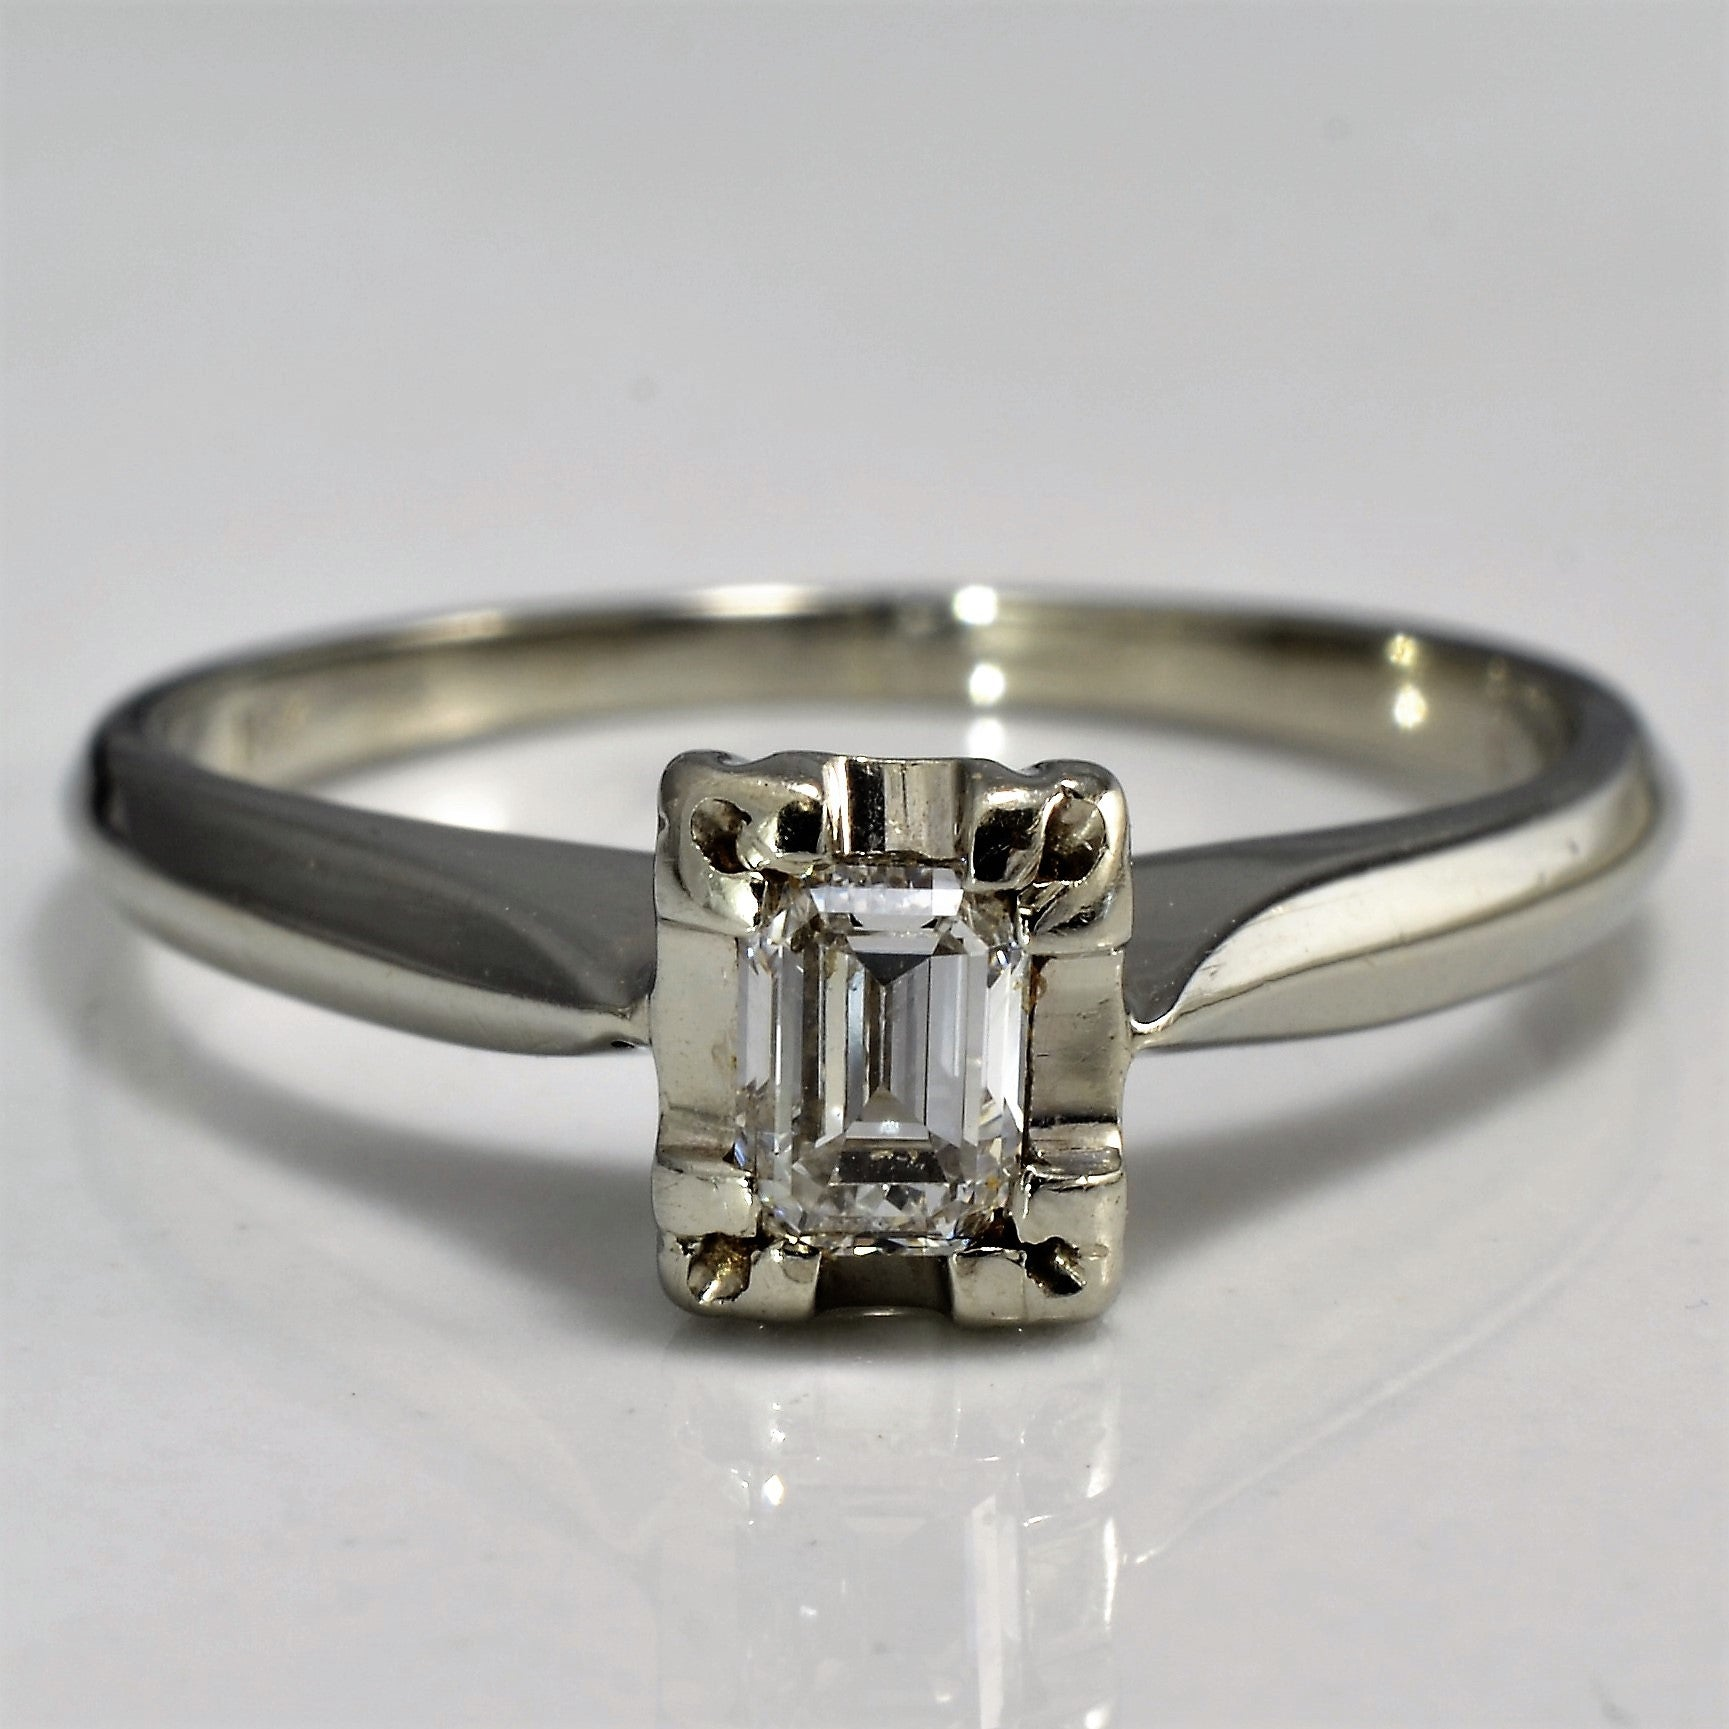 Illusion Emerald Cut Solitaire Engagement Ring | 0.25 ct, SZ 5 |